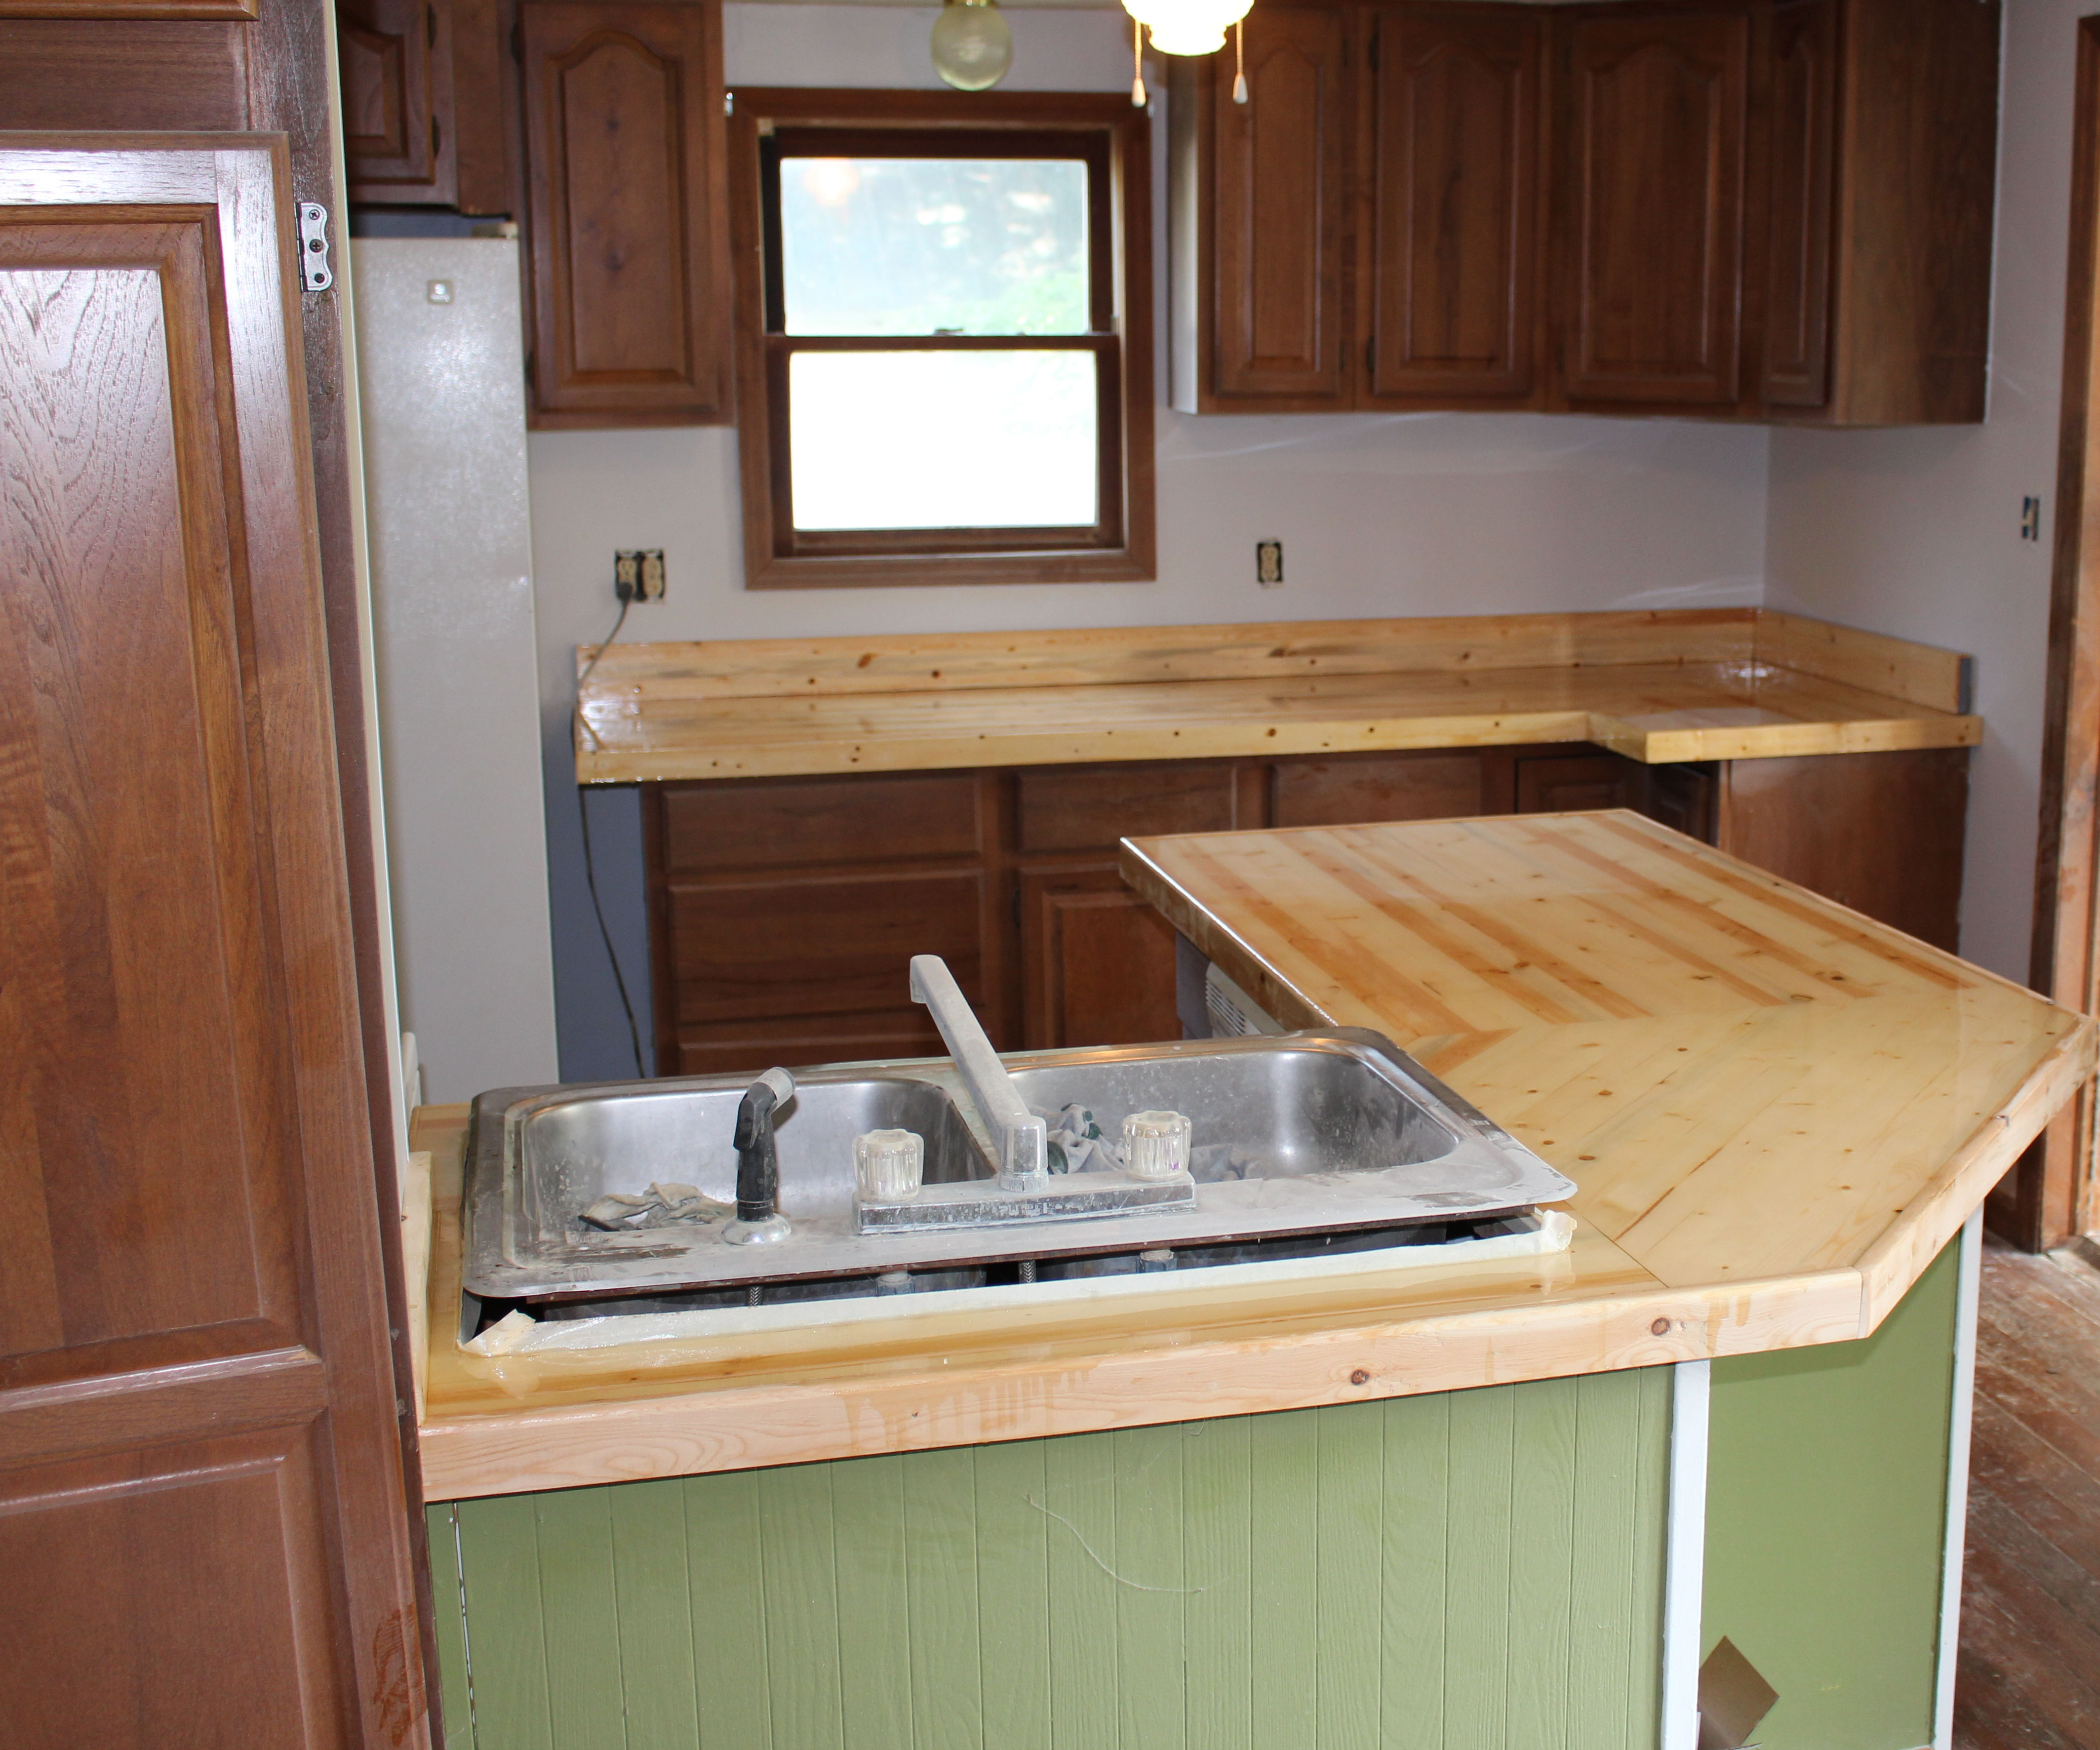 Say Goodbye to That Formica Countertop